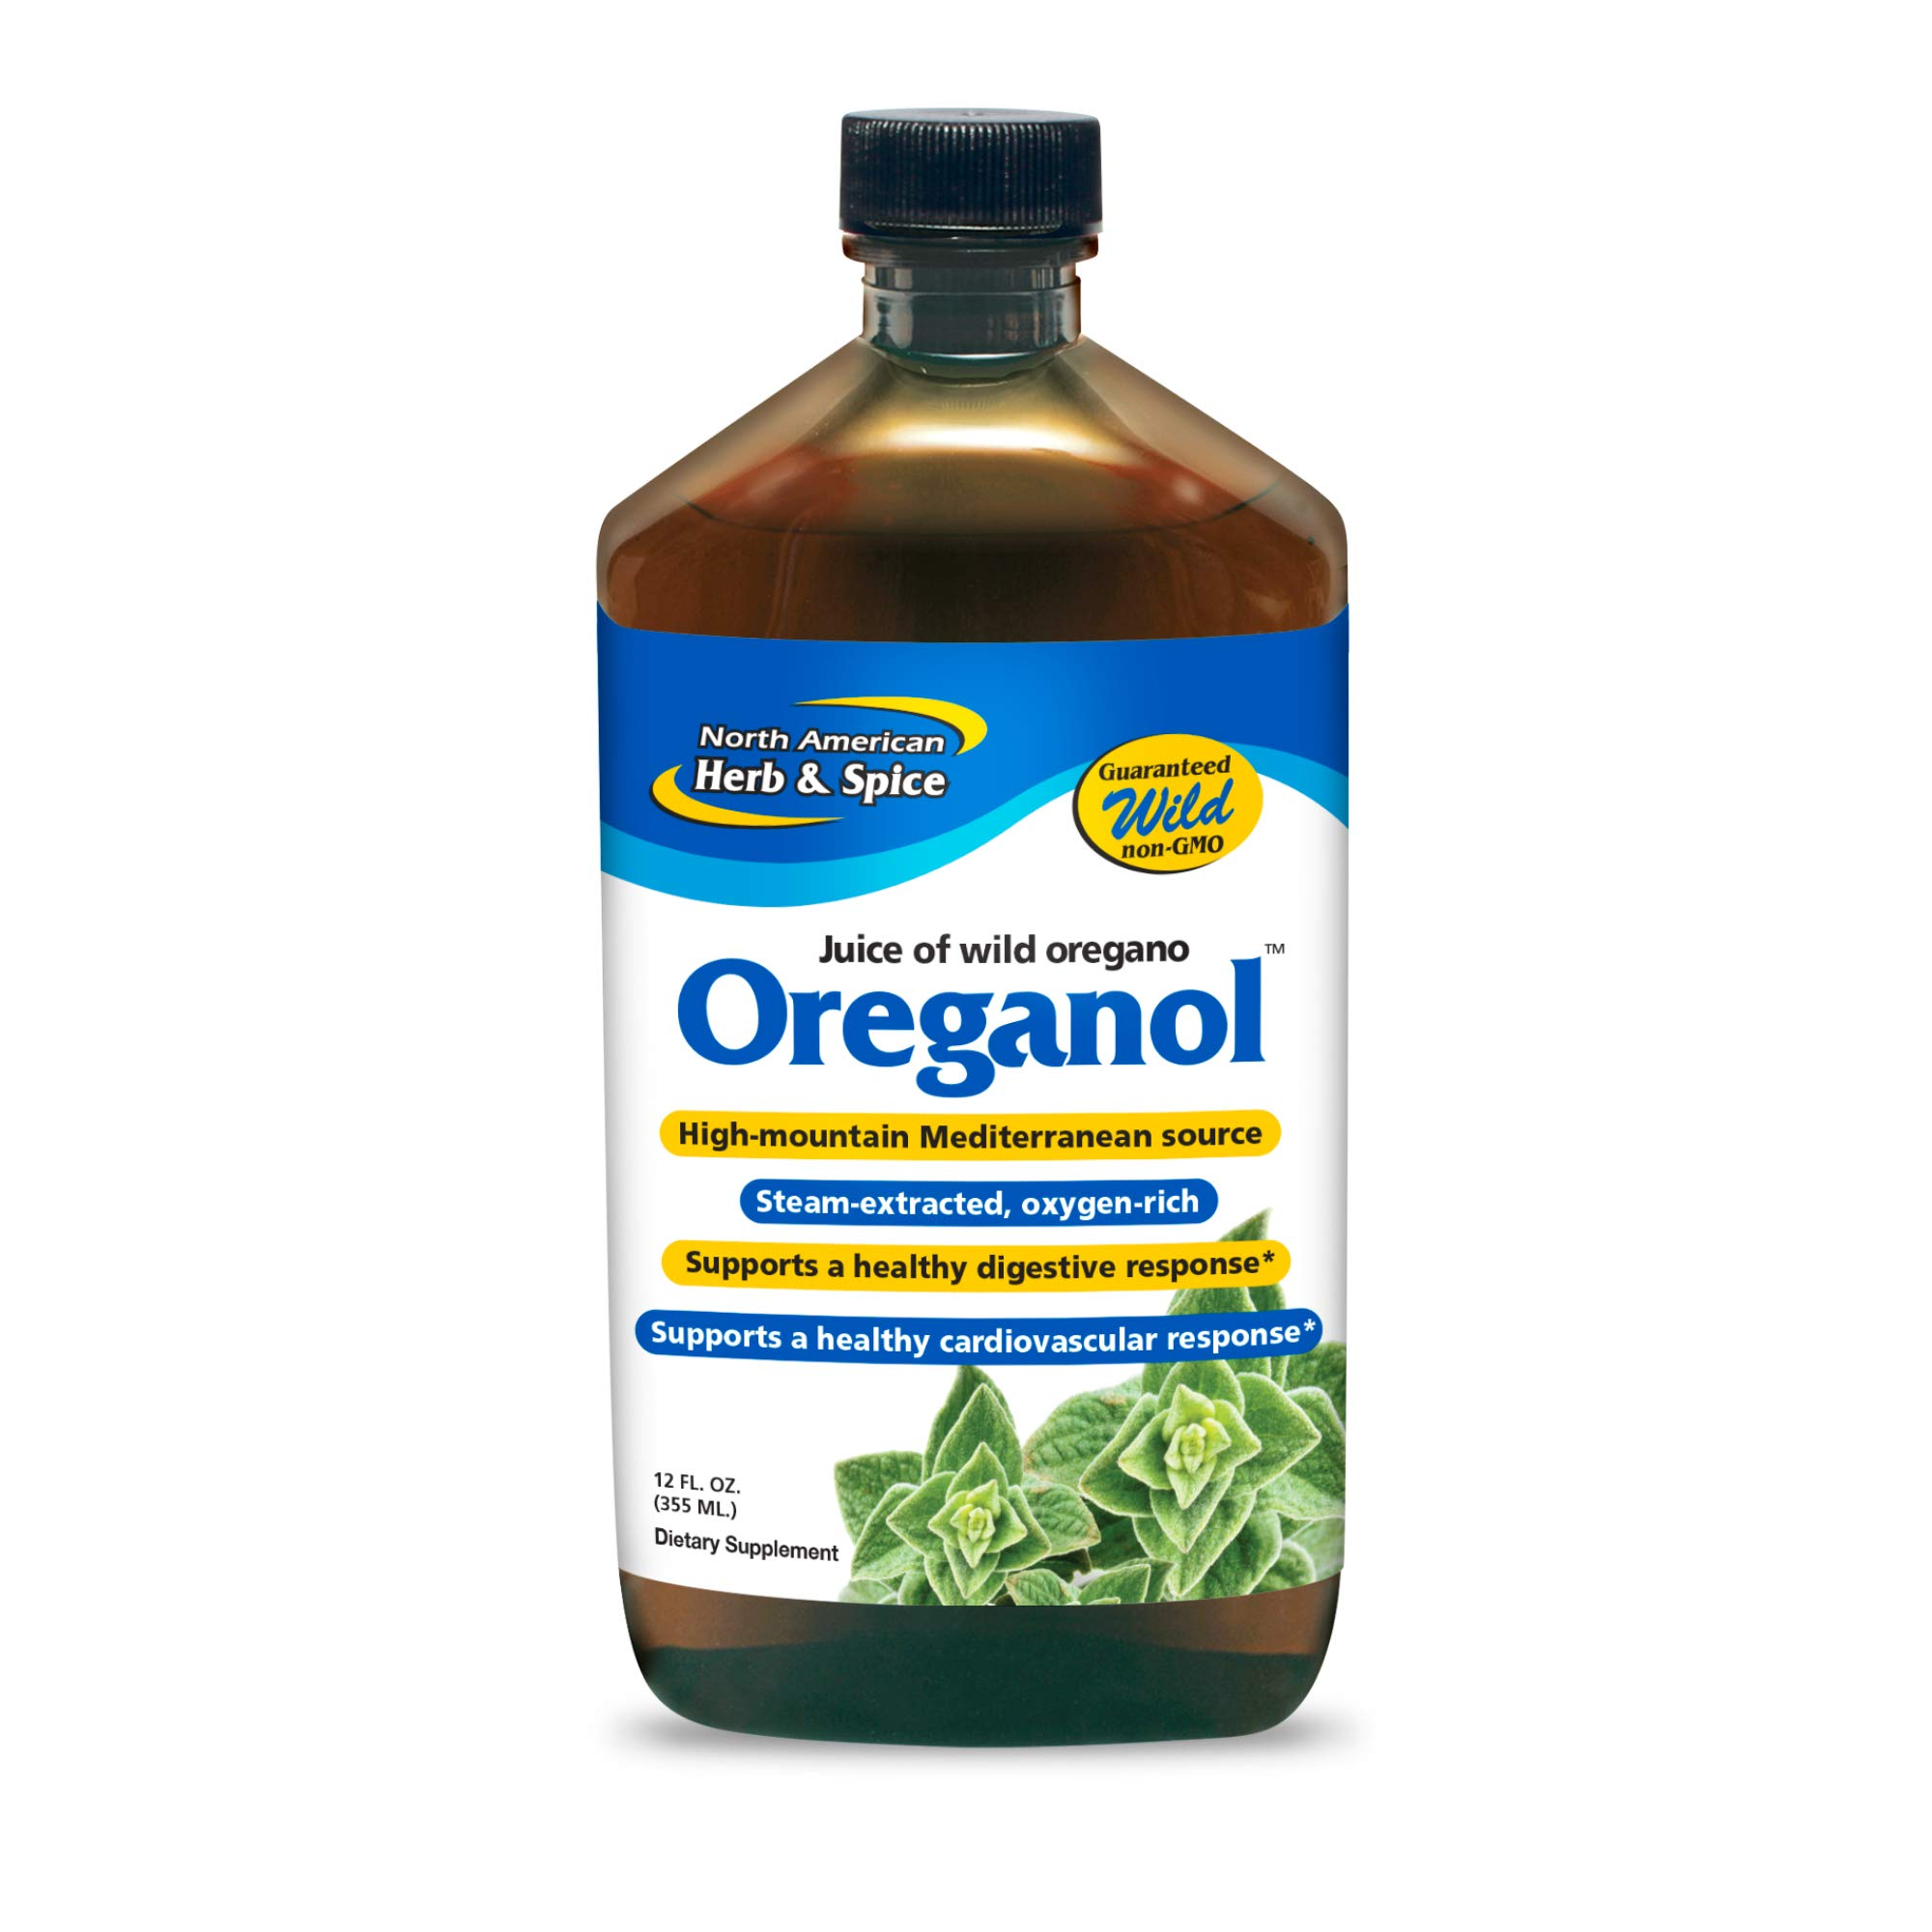 North American Herb and Spice, Juice of Oregano, 12 oz.